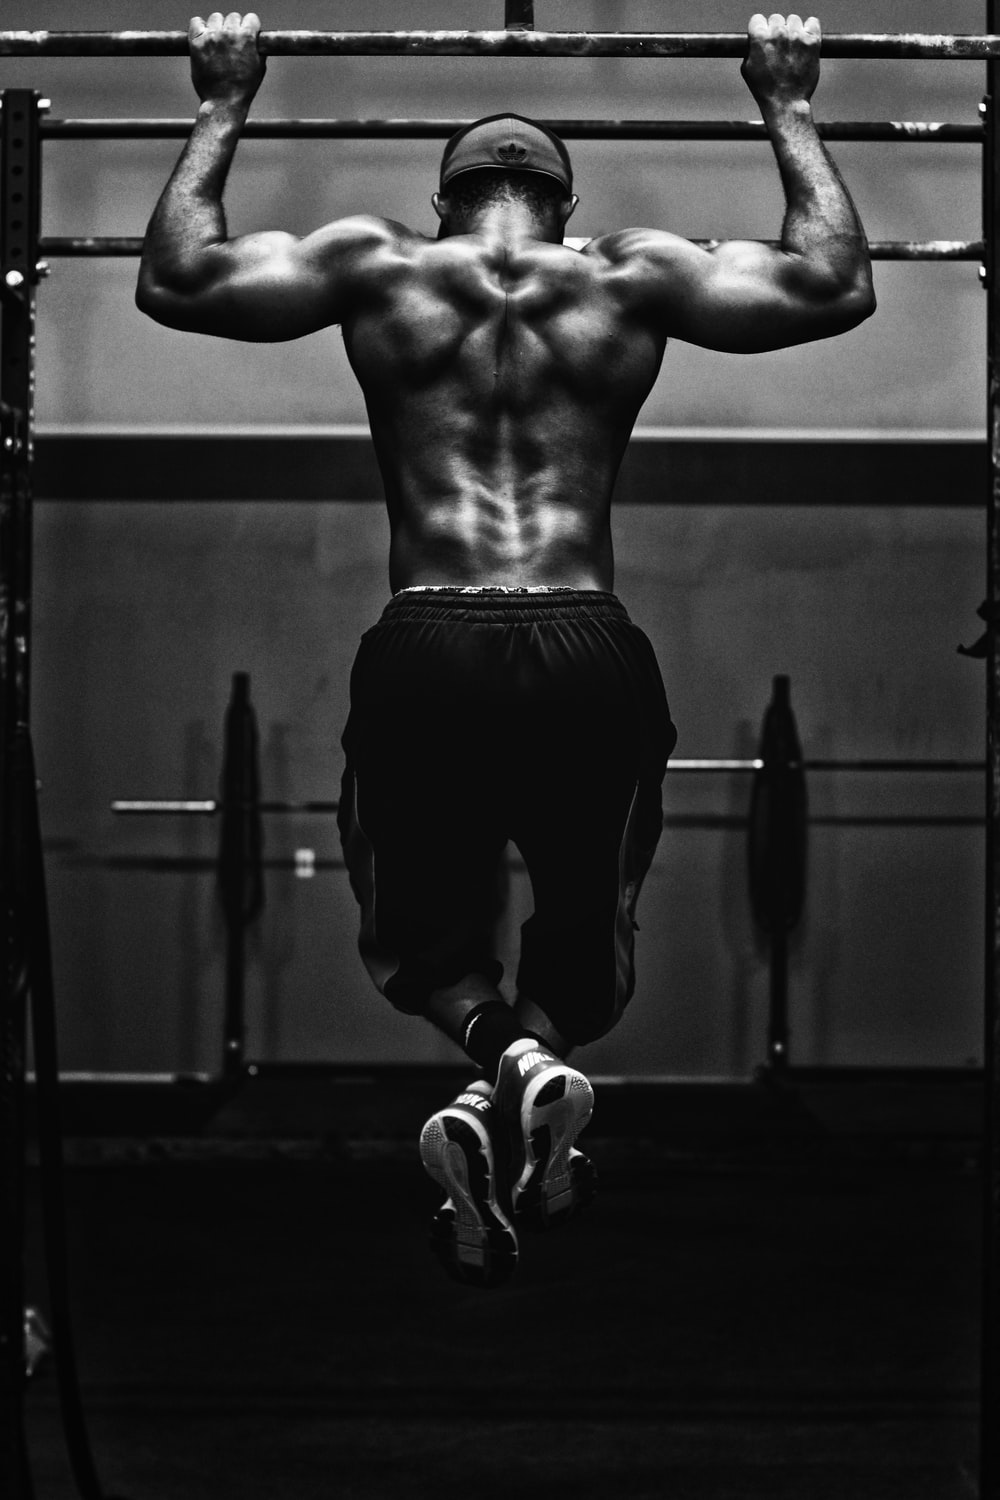 grayscale photo of man working out